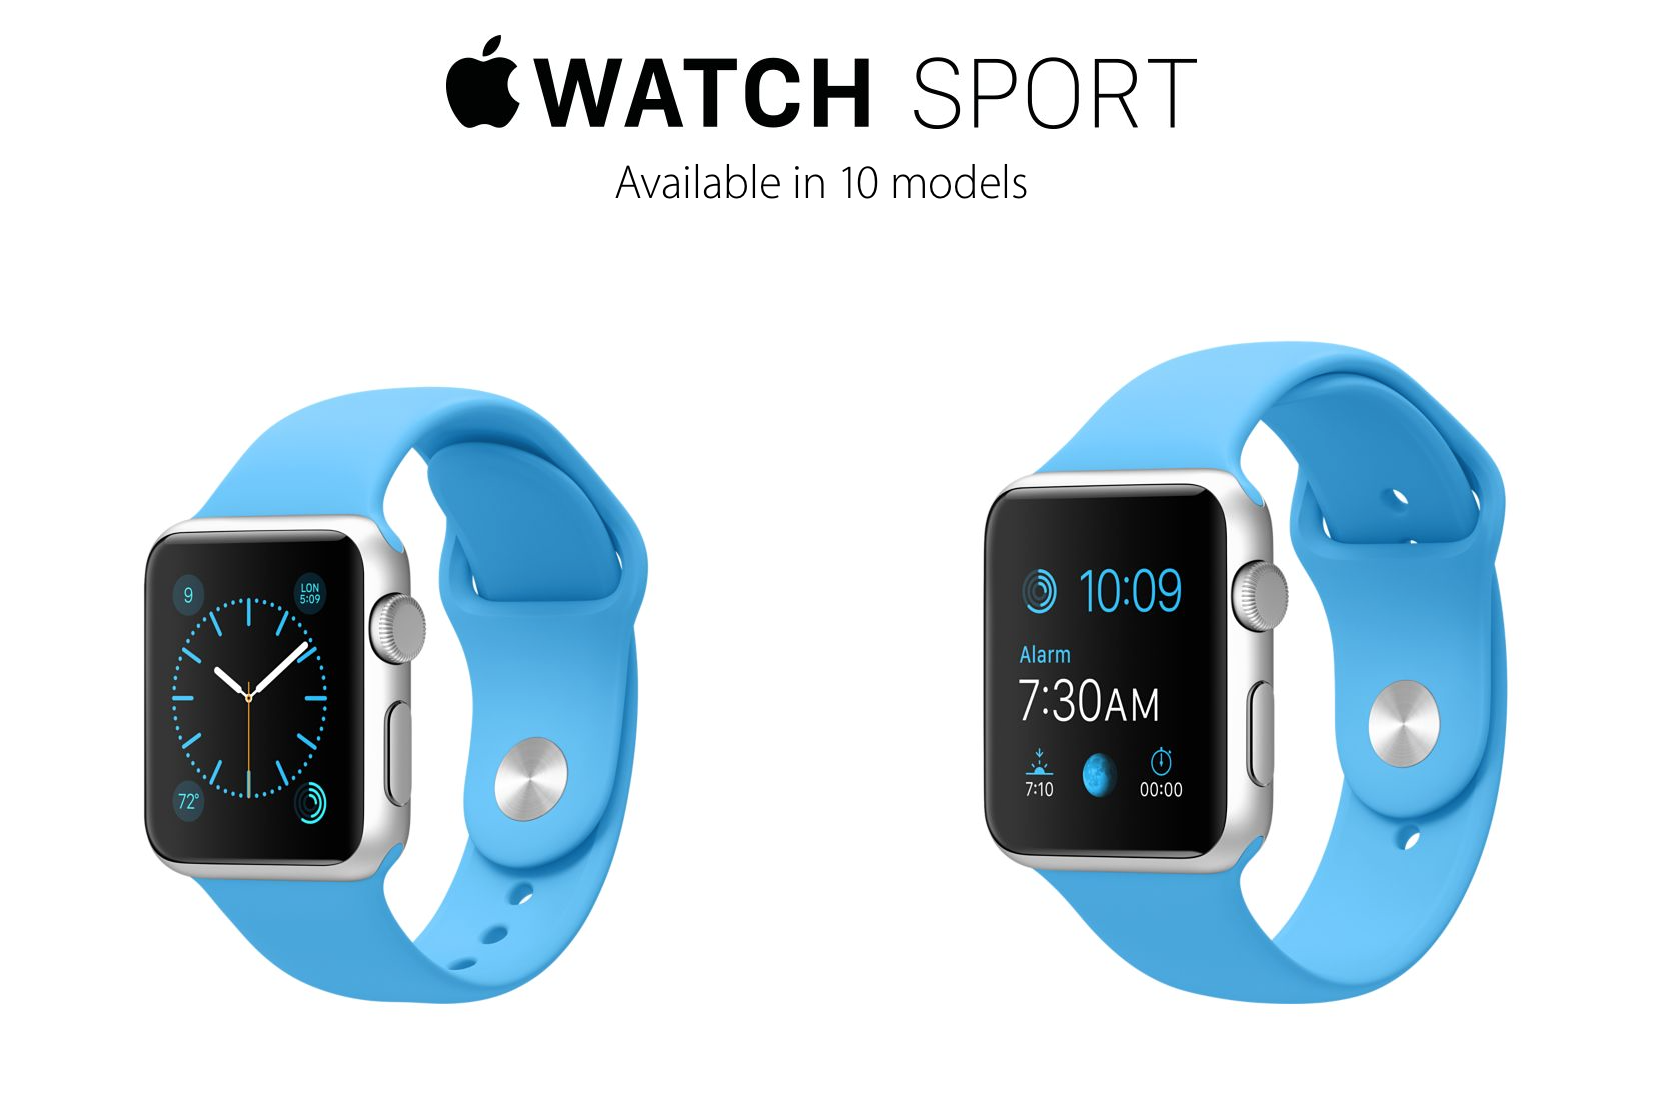 It looks like Apple Watch Sport Bands actually come in 3 pieces, so there'll be no swapping after all